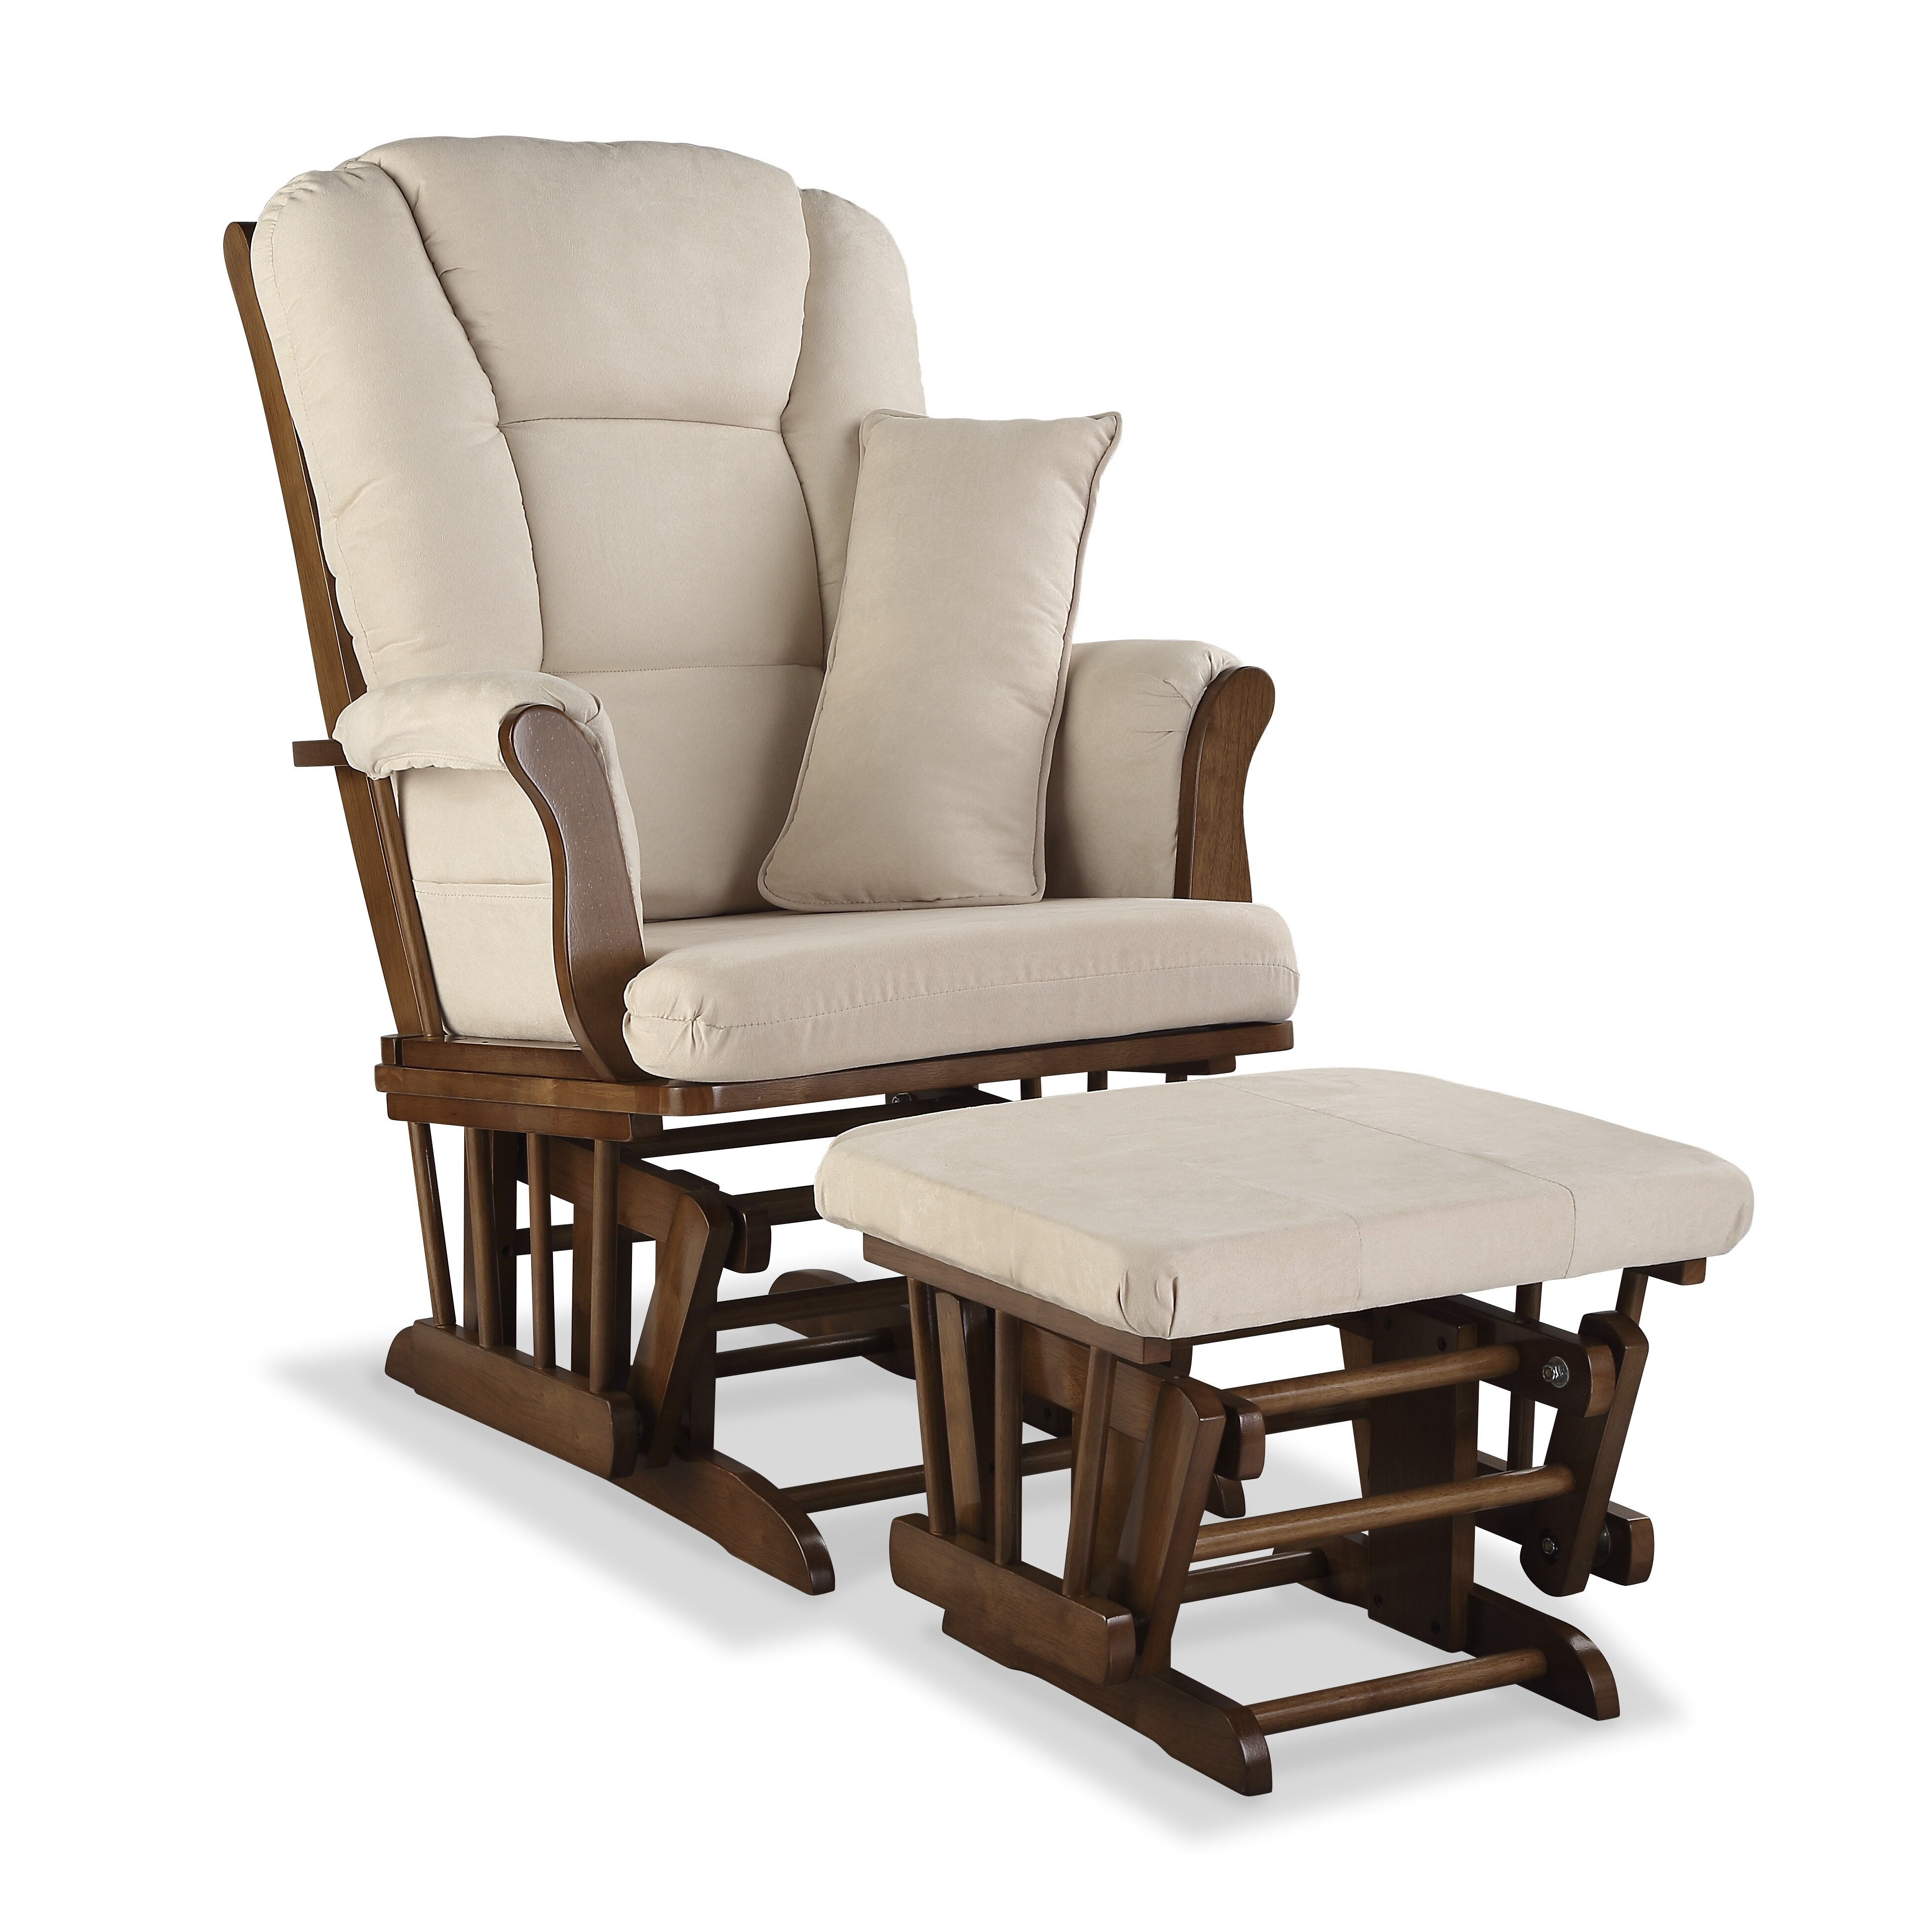 Superb img of Storkcraft Custom Tuscany Glider & Ottoman & Reviews Wayfair with #614530 color and 3913x3913 pixels